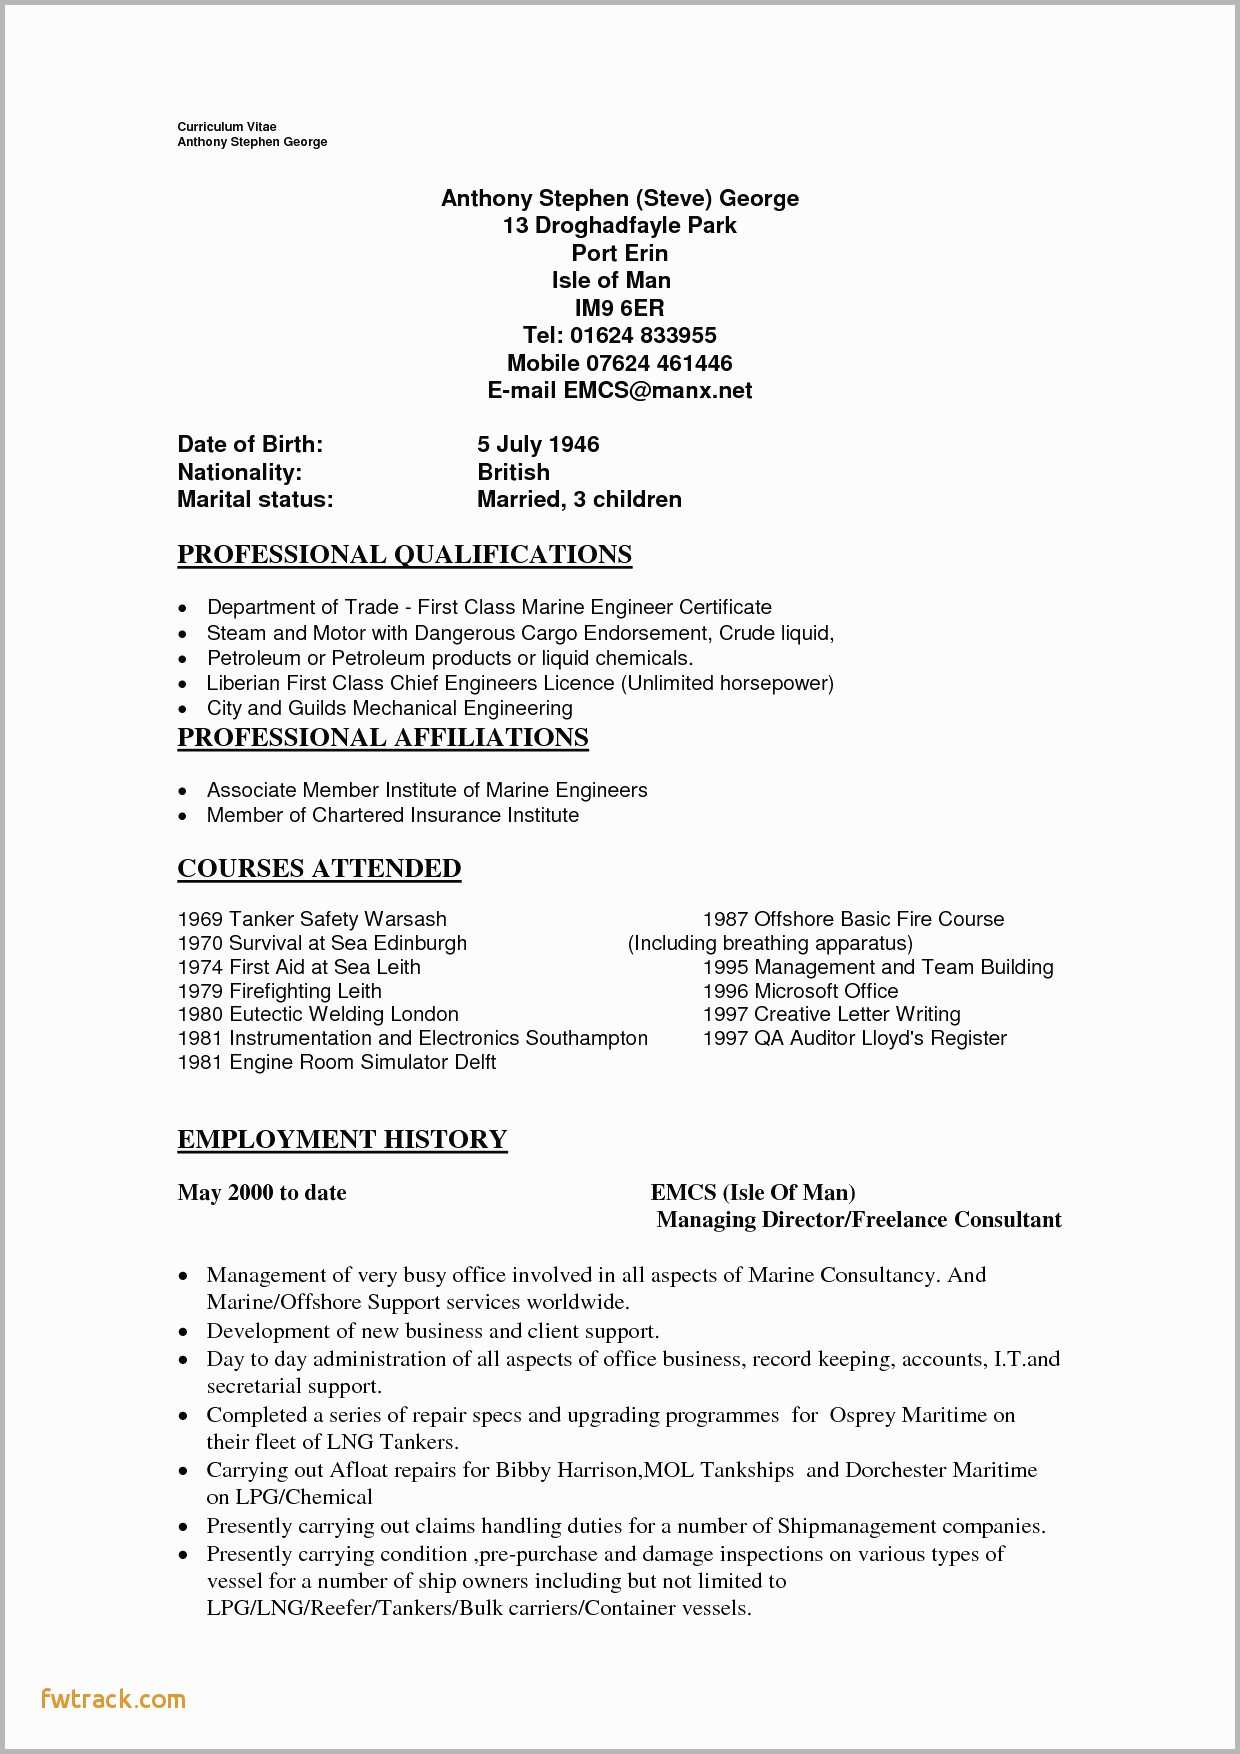 mechanical engineering resume templates example-Mechanical Engineer Resume Template 1-j